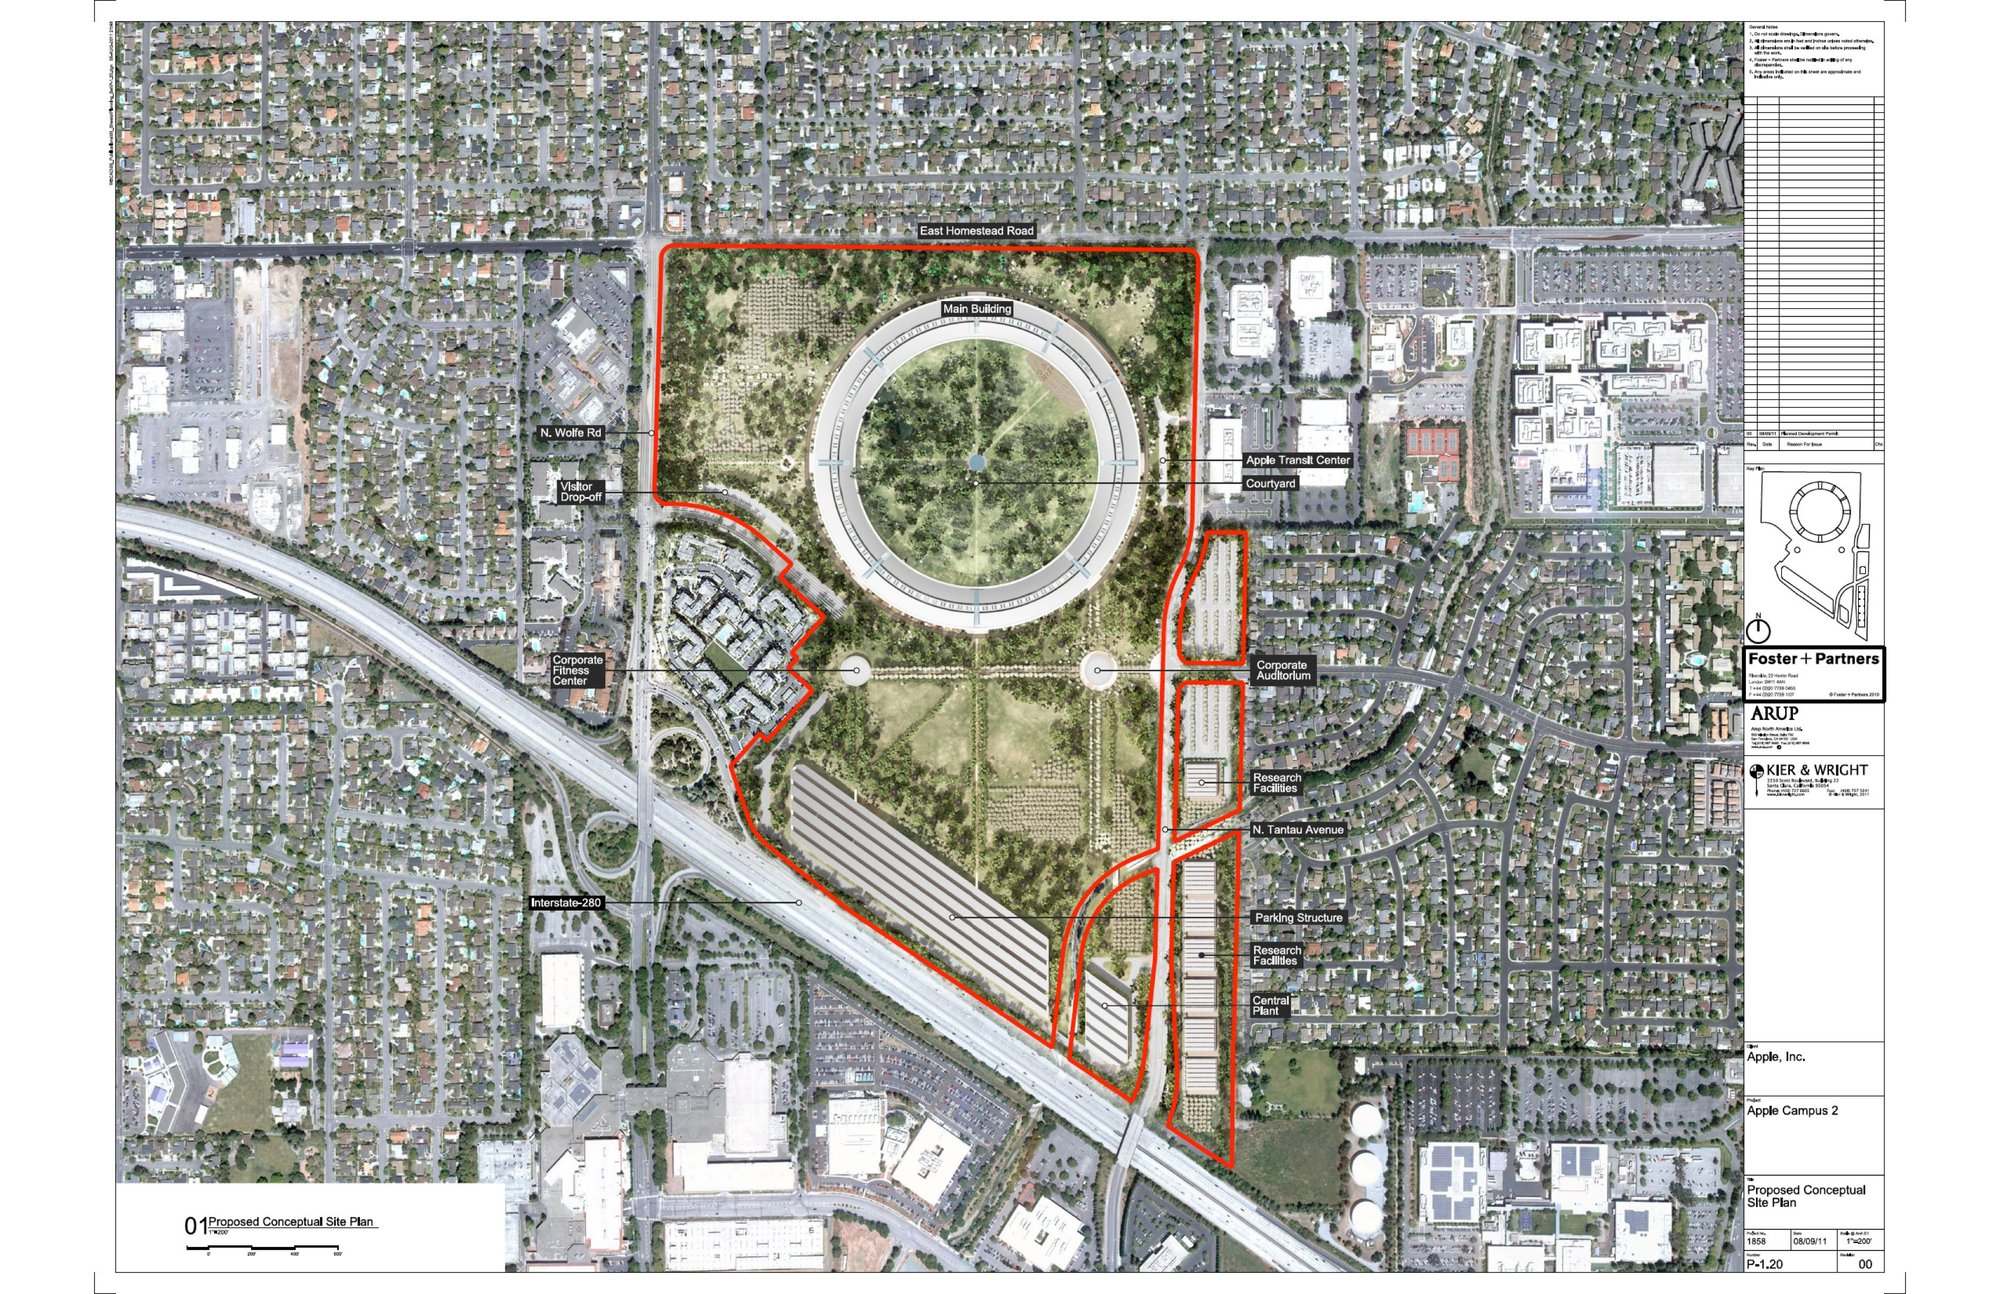 More about foster partners new apple campus in cupertino archdaily proposed conceptual site plan foster partners arup kier wright apple malvernweather Images